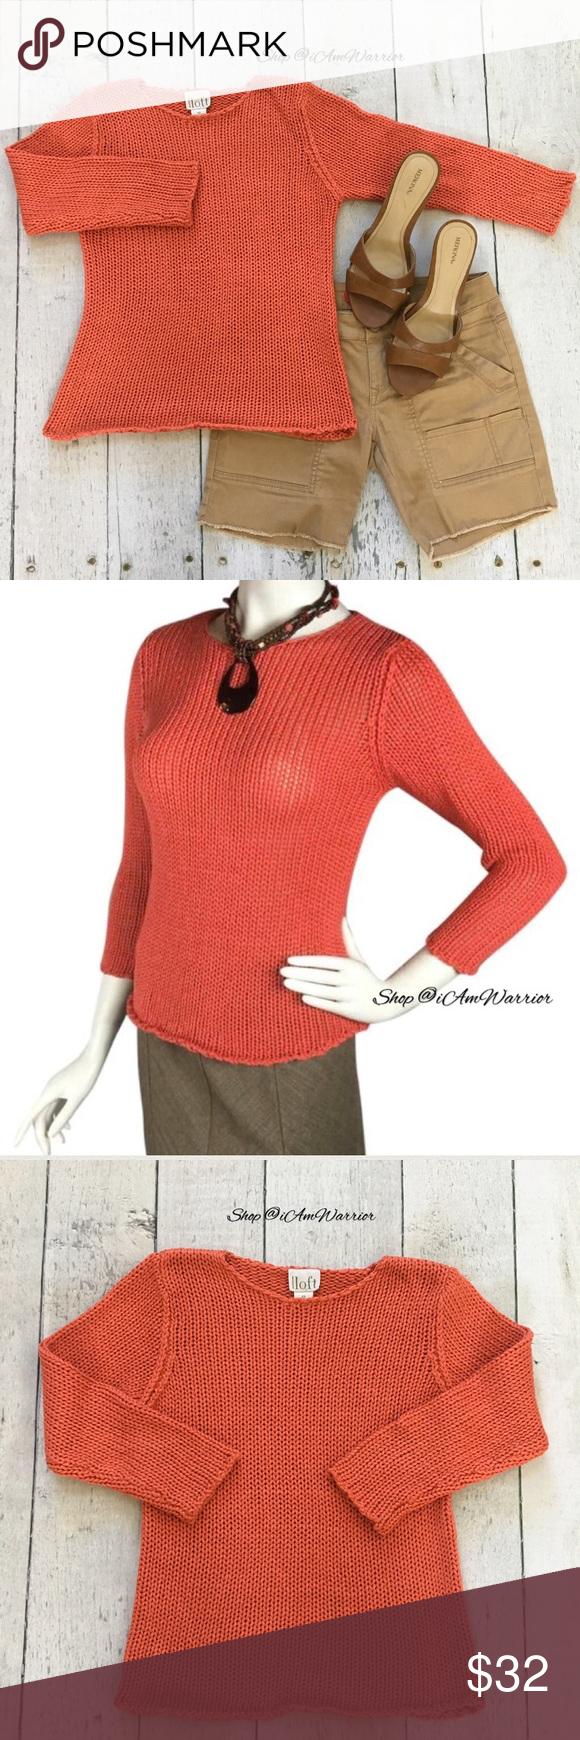 Ann Taylor Loft orange sweater with rolled hem | Loft, Scoop neck ...